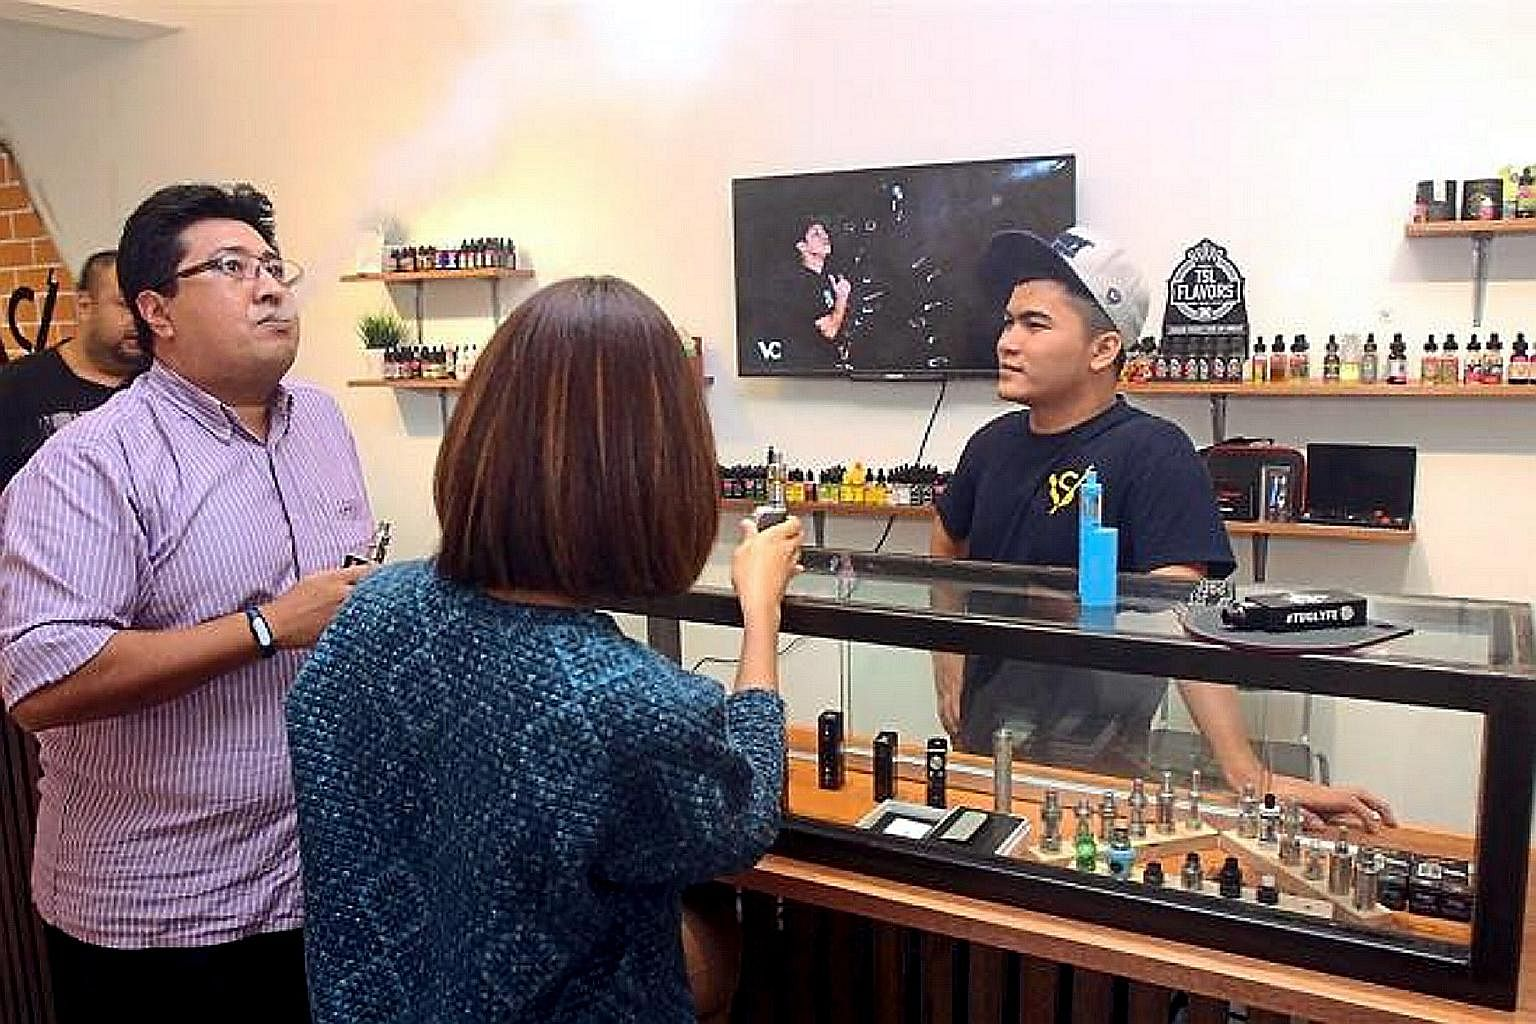 Johor Sultan orders ban on electronic cigarette sales, SE Asia News & Top  Stories - The Straits Times